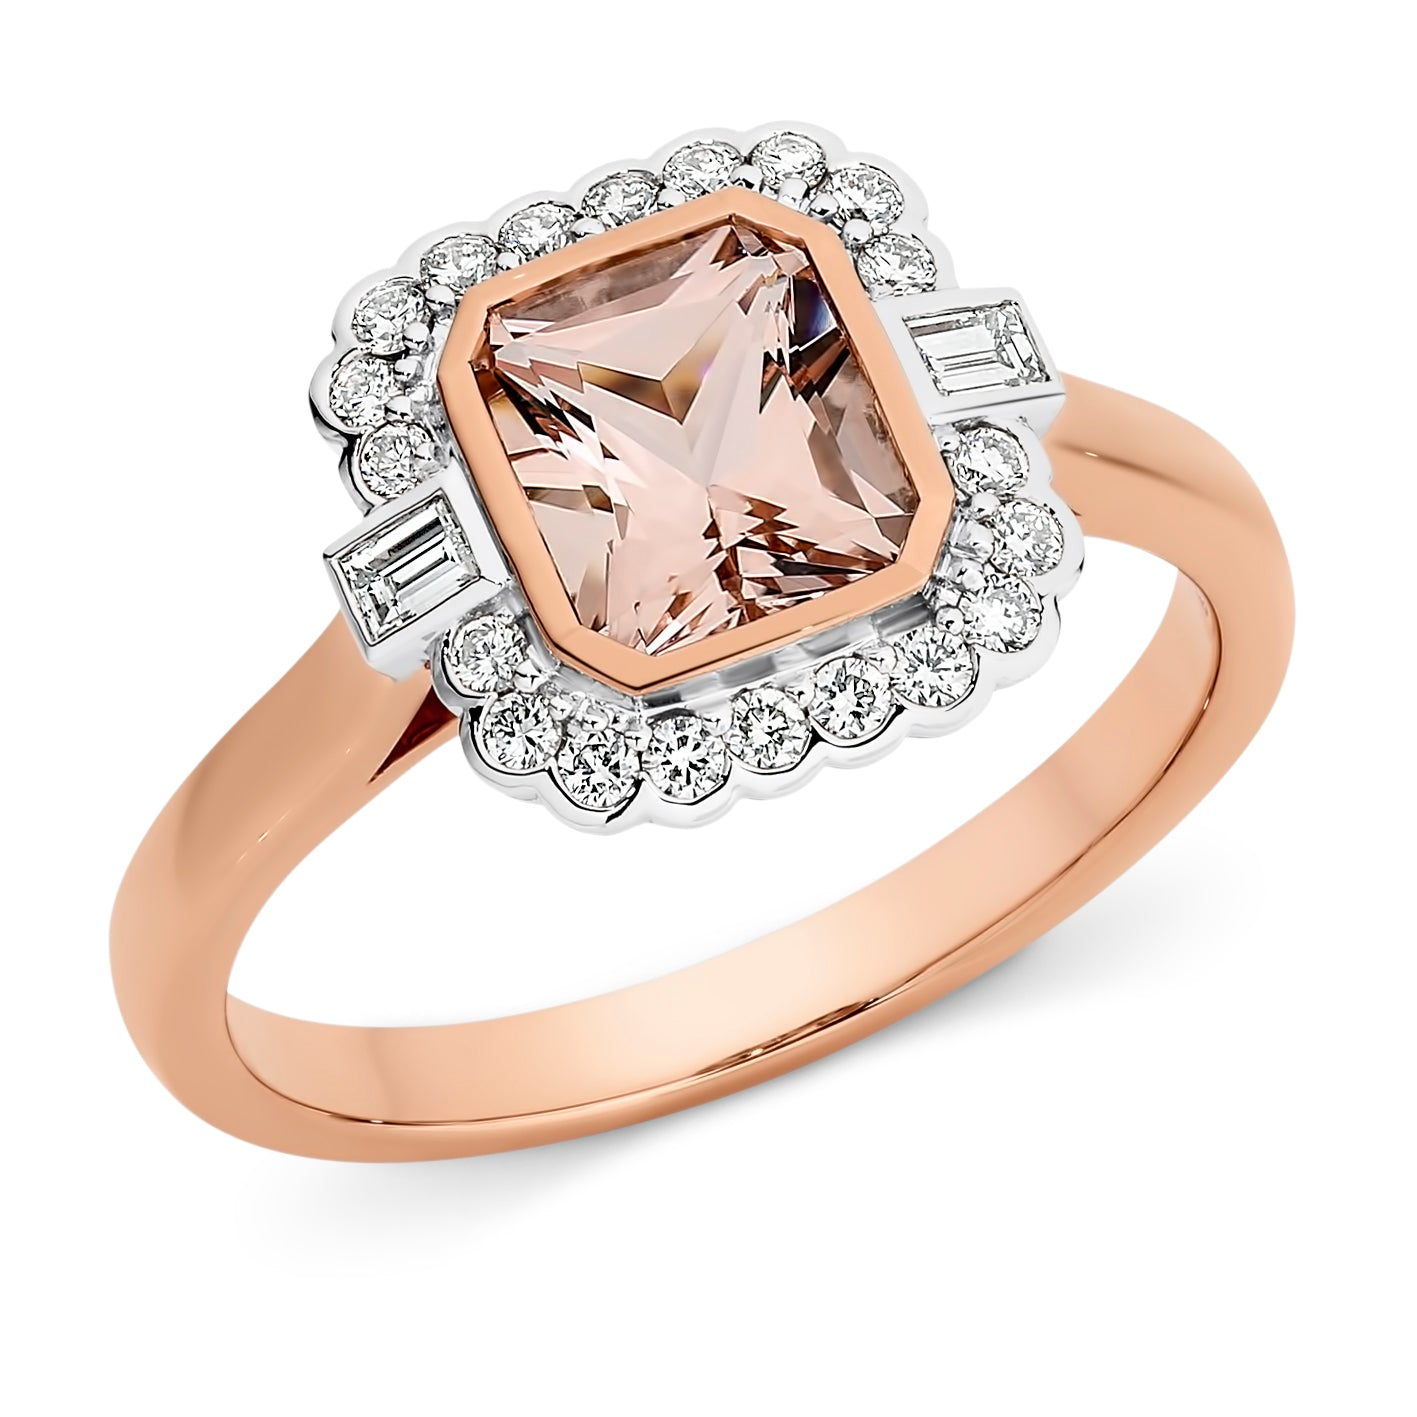 MORGANITE & DIAMOND (SI3 JK) BEZEL SET DRESS RING IN 9CT ROSE/WHITE GOLD TDW 0.26CT